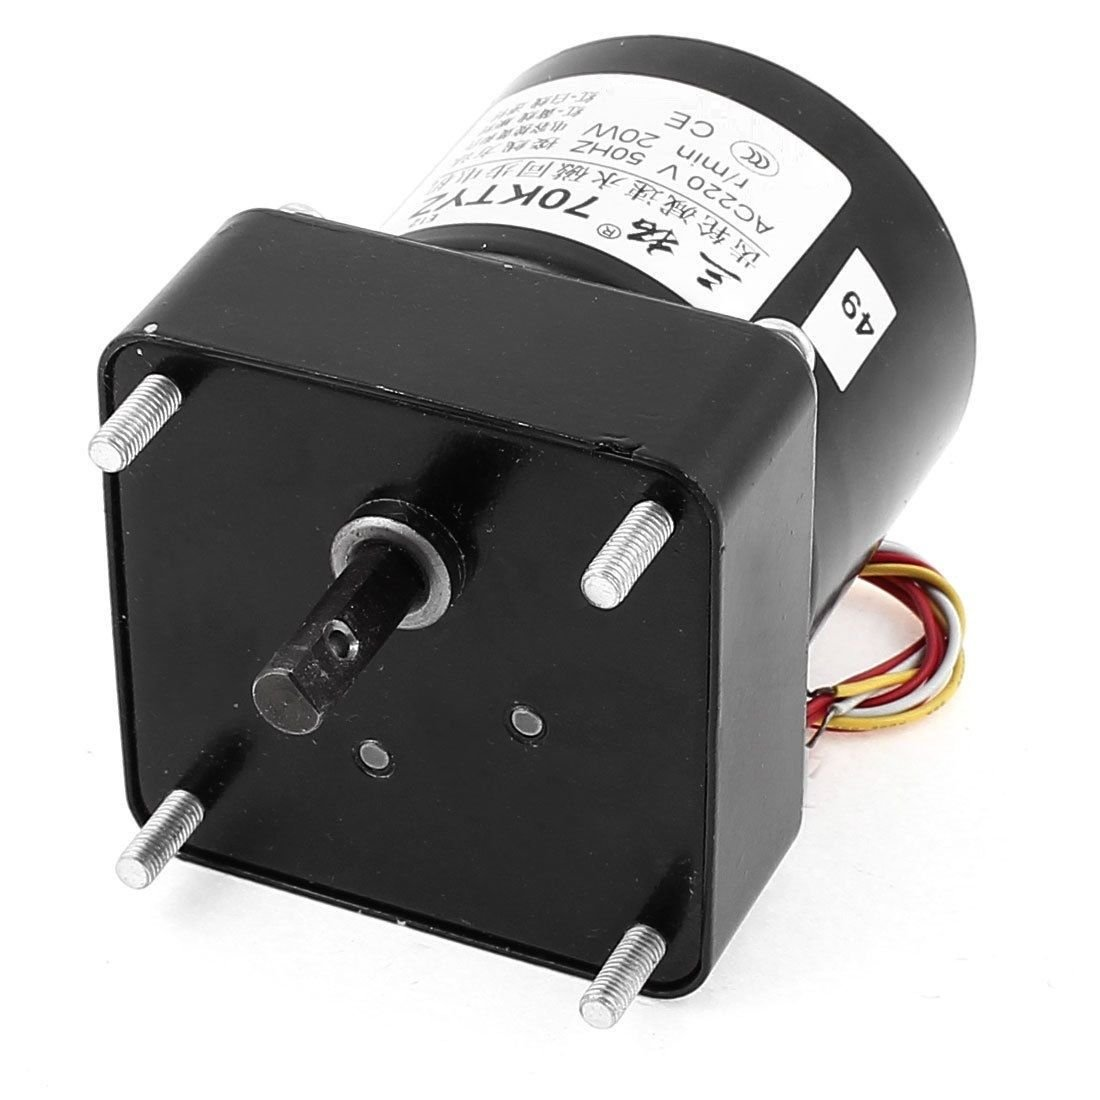 AC220V 15RPM 50KG.CM High Torque Reversible Synchronous Gear Motor Speed Reducer